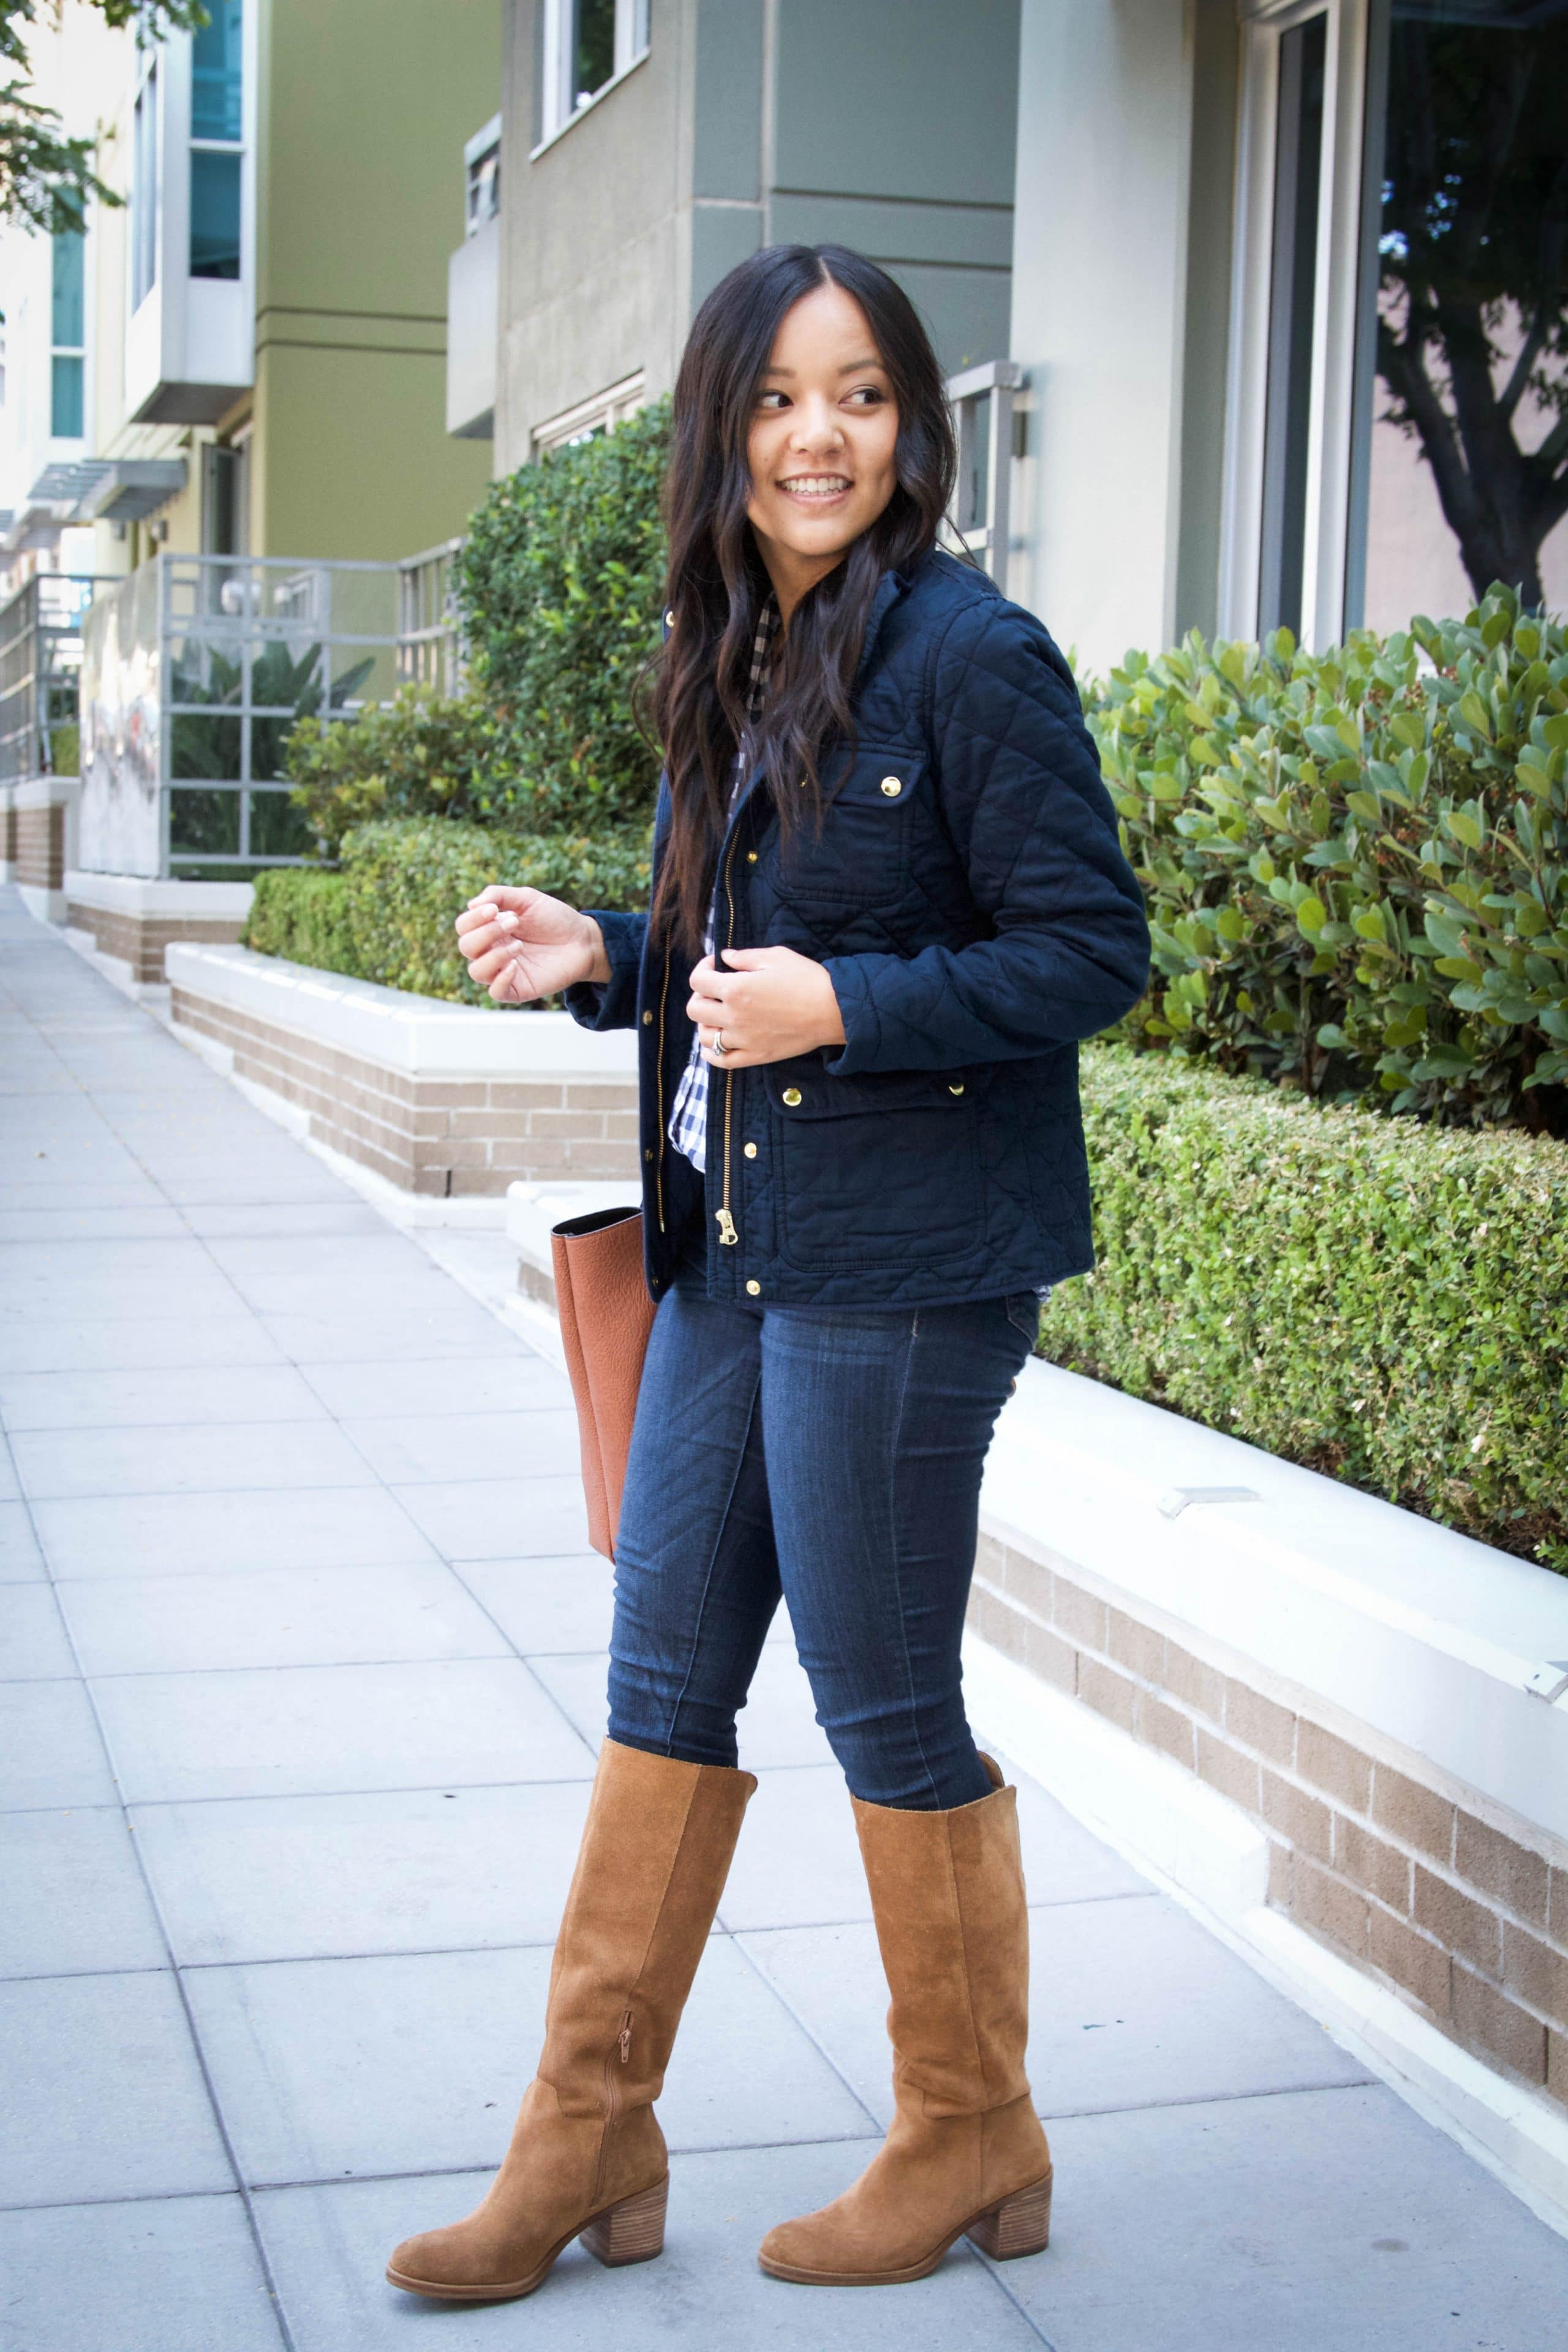 Quilted Jacket + Skinnies + Gingham Shirt + Riding Boots + Skinnies